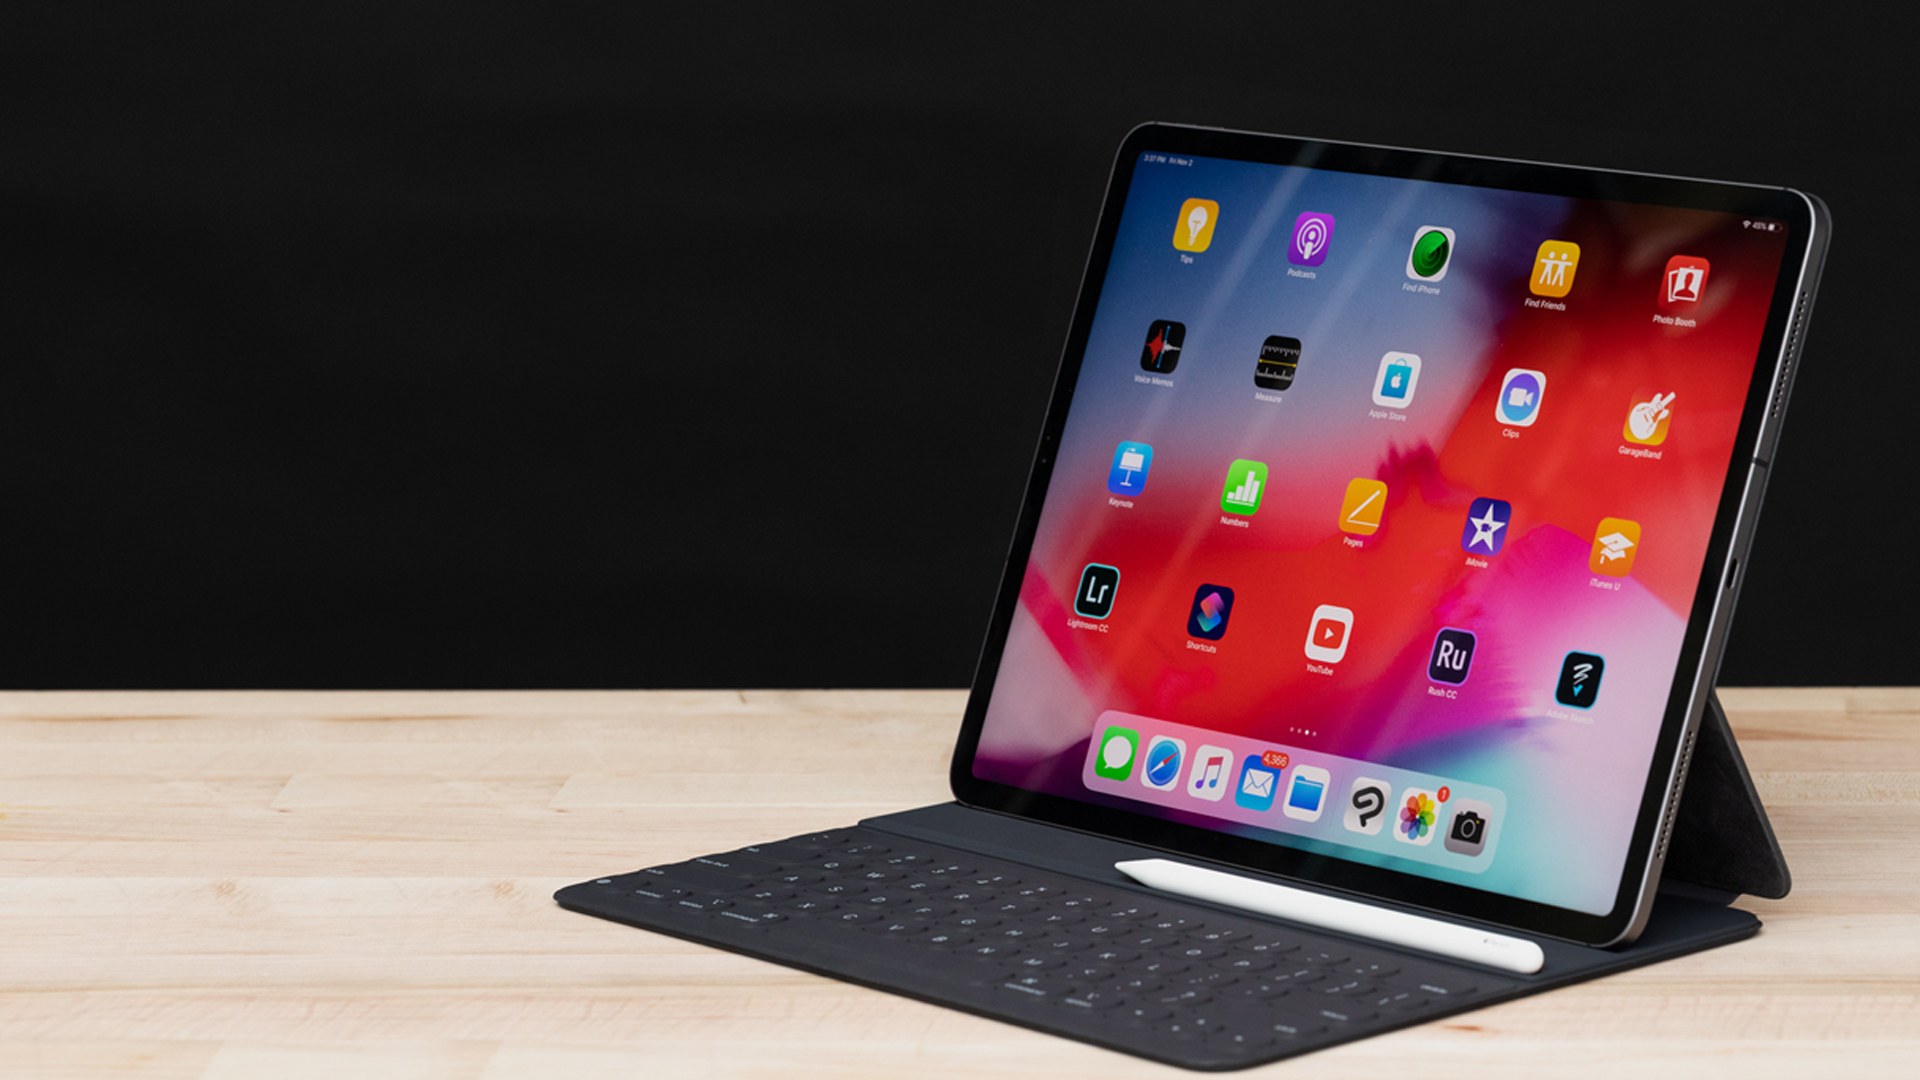 Apple iPad Pro review 2018: the fastest iPad is still an